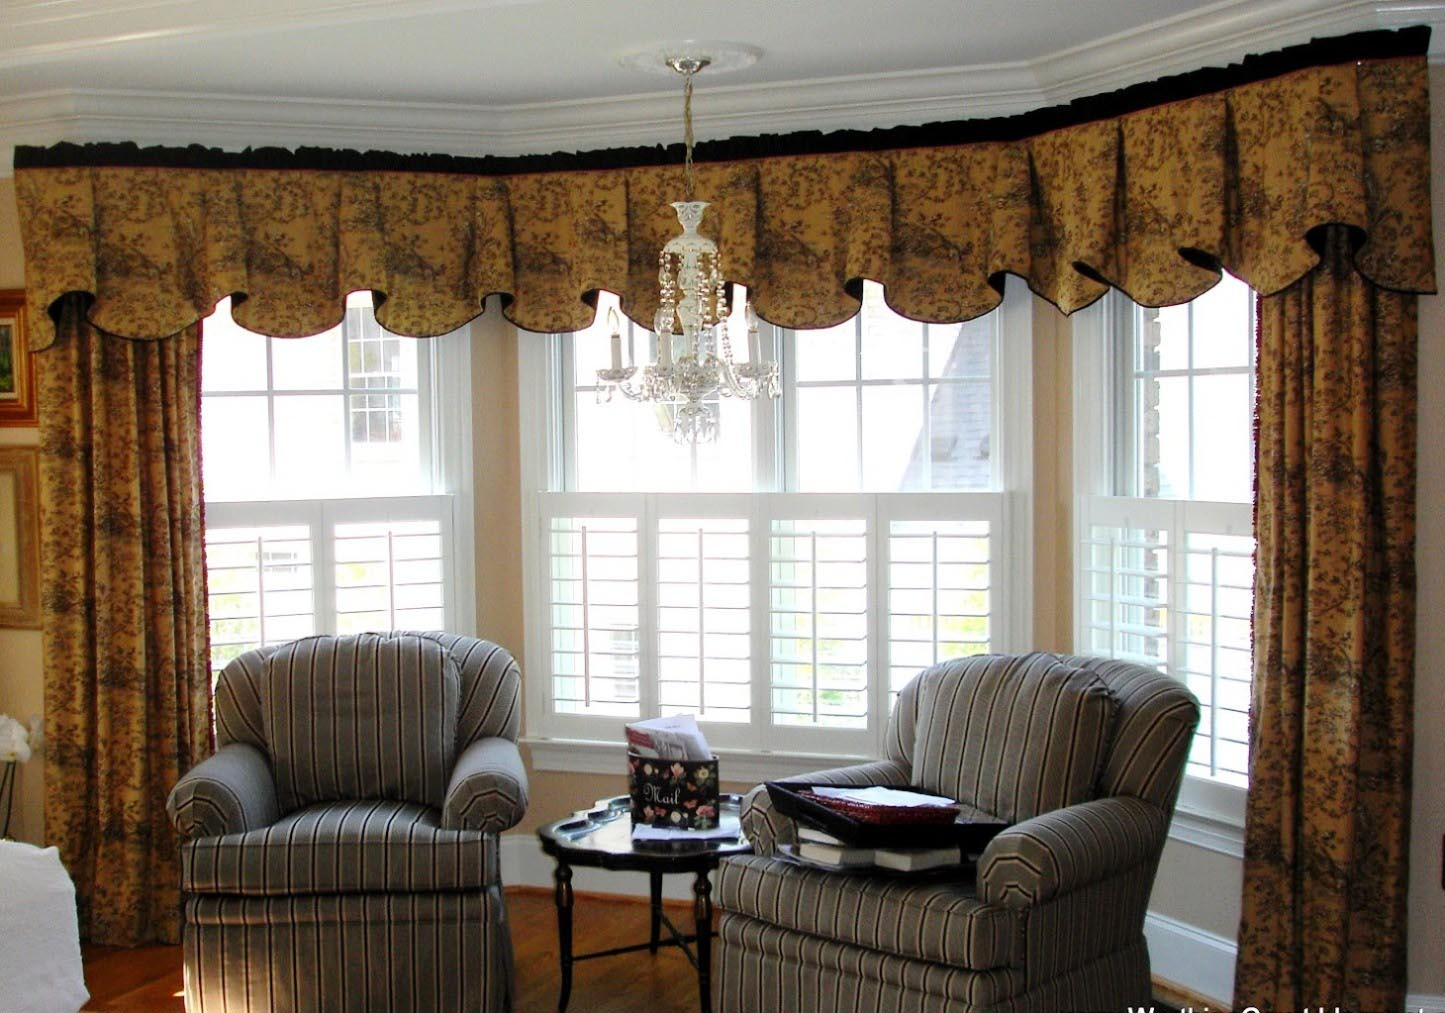 Valance curtains for living room window treatments for Living room valances